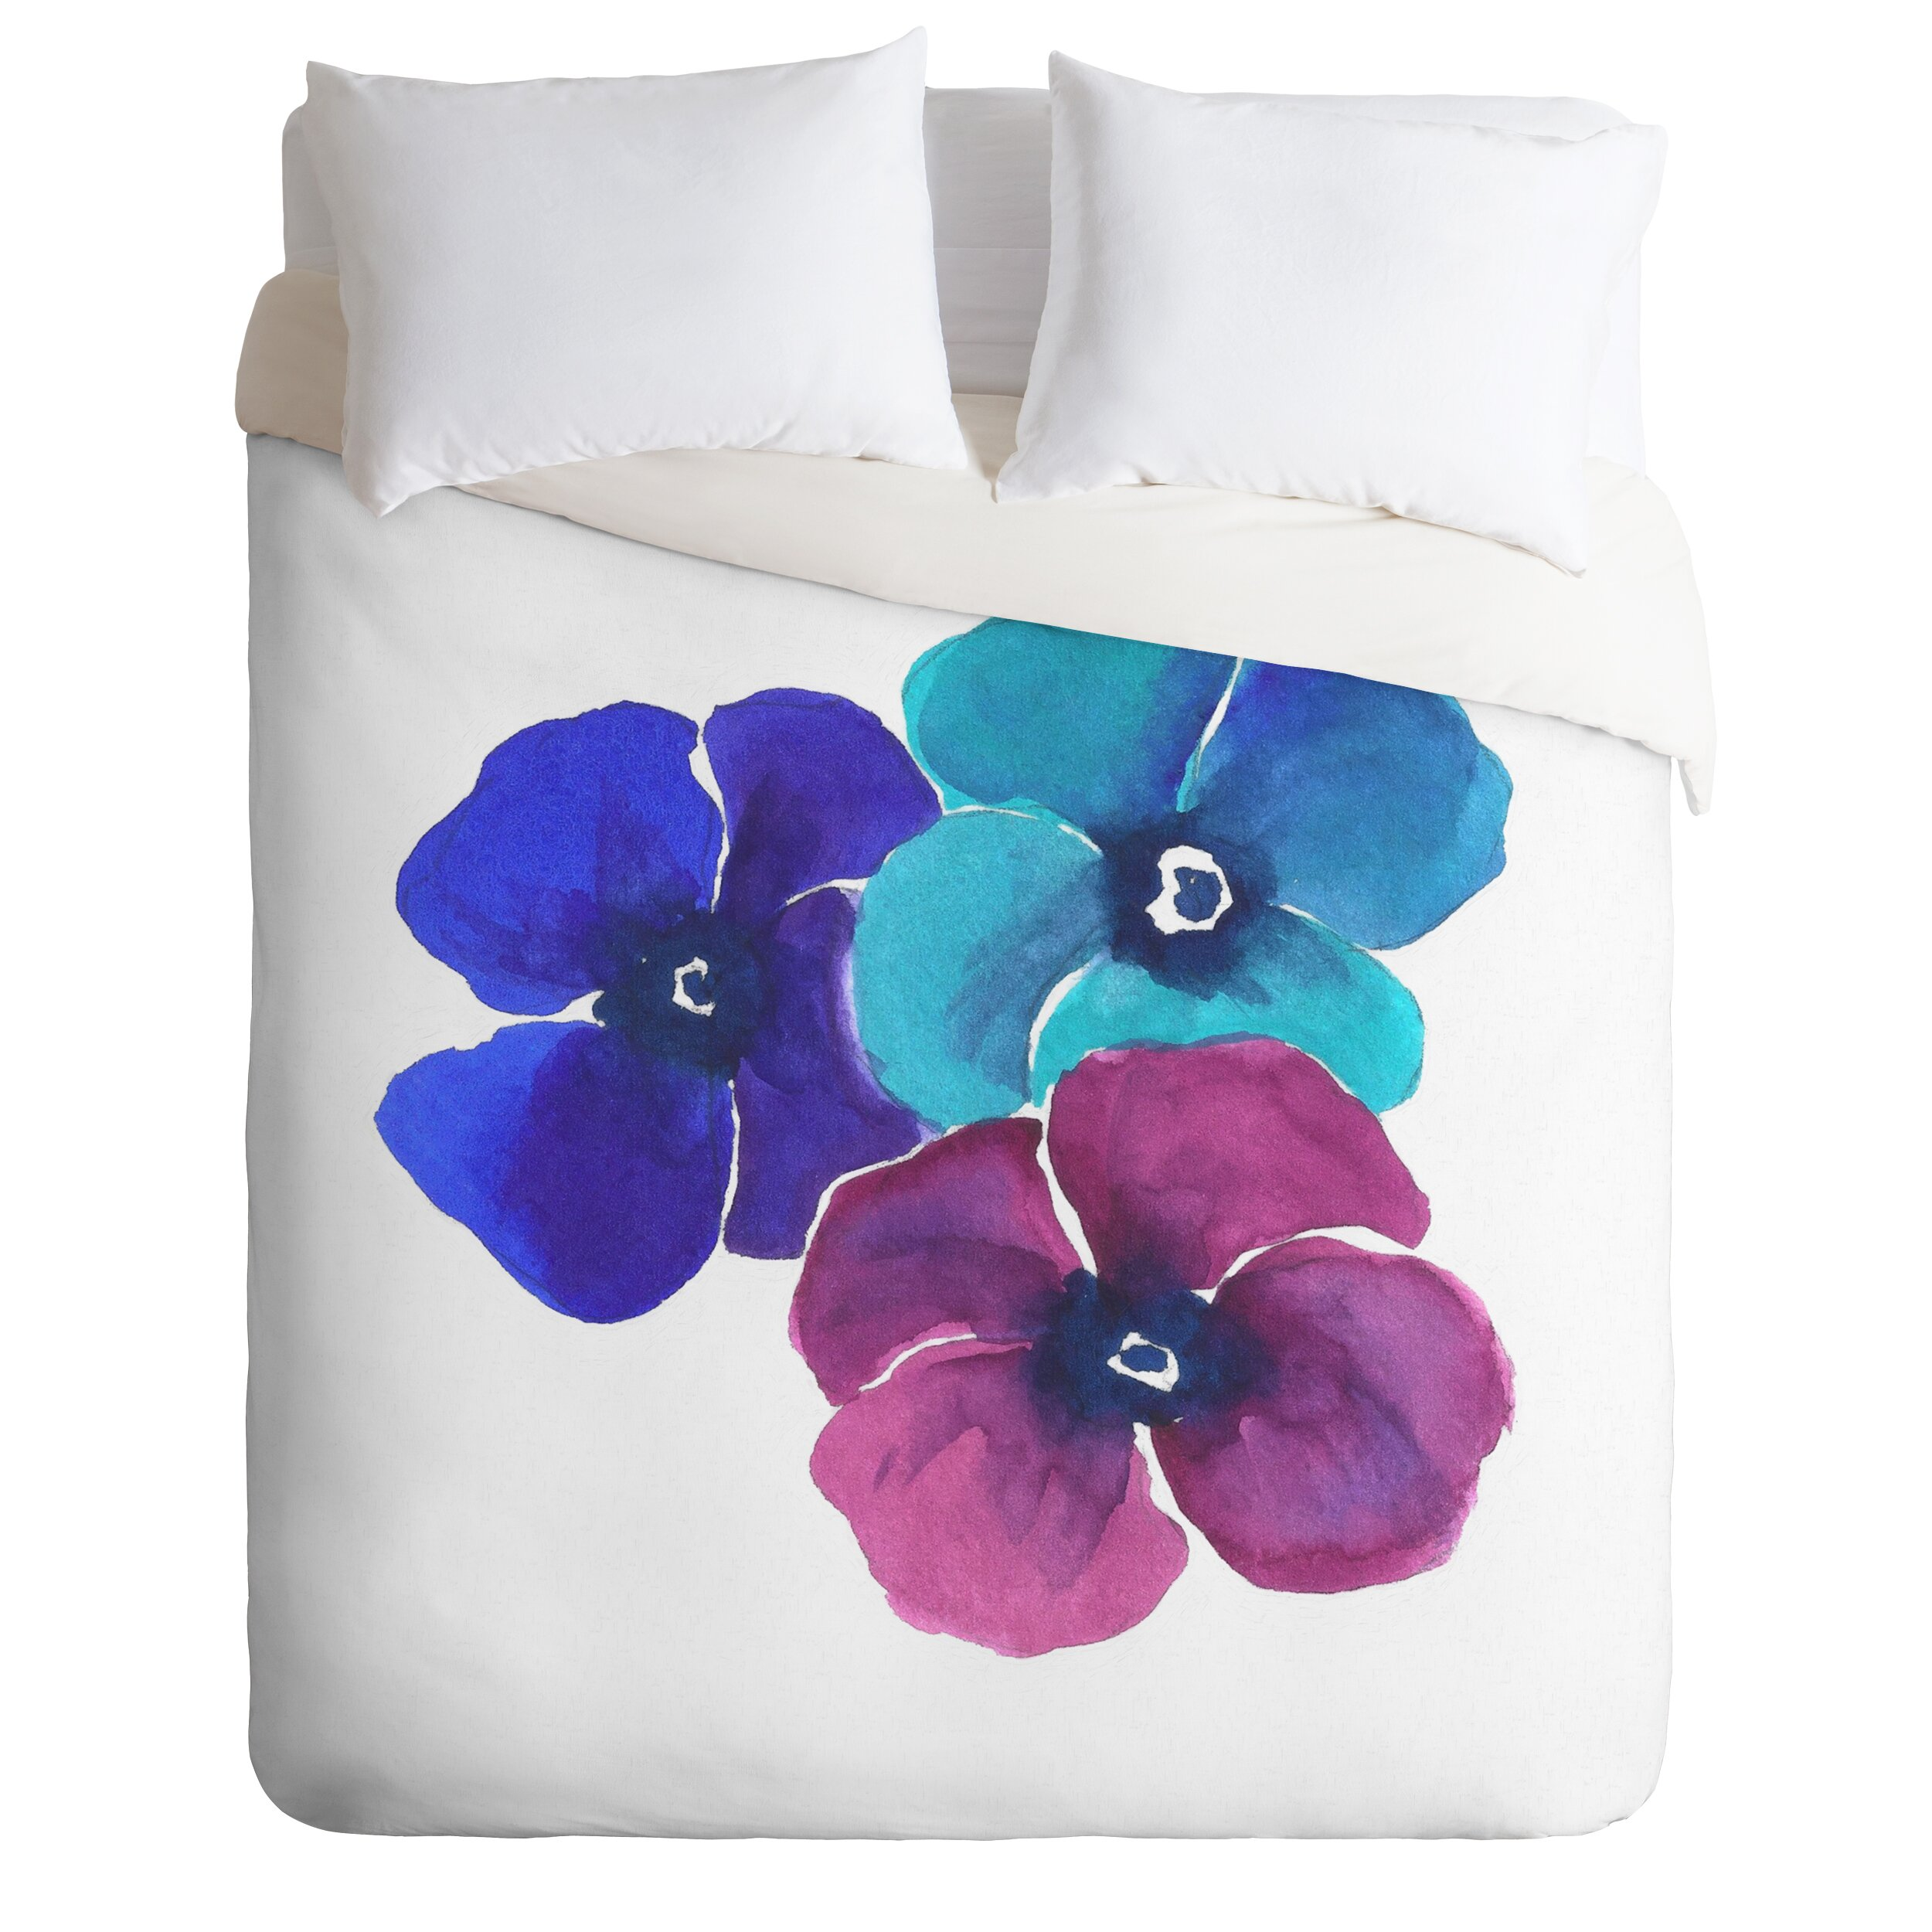 Jewel Tone Pansies Duvet Cover Collection by DENY Designs